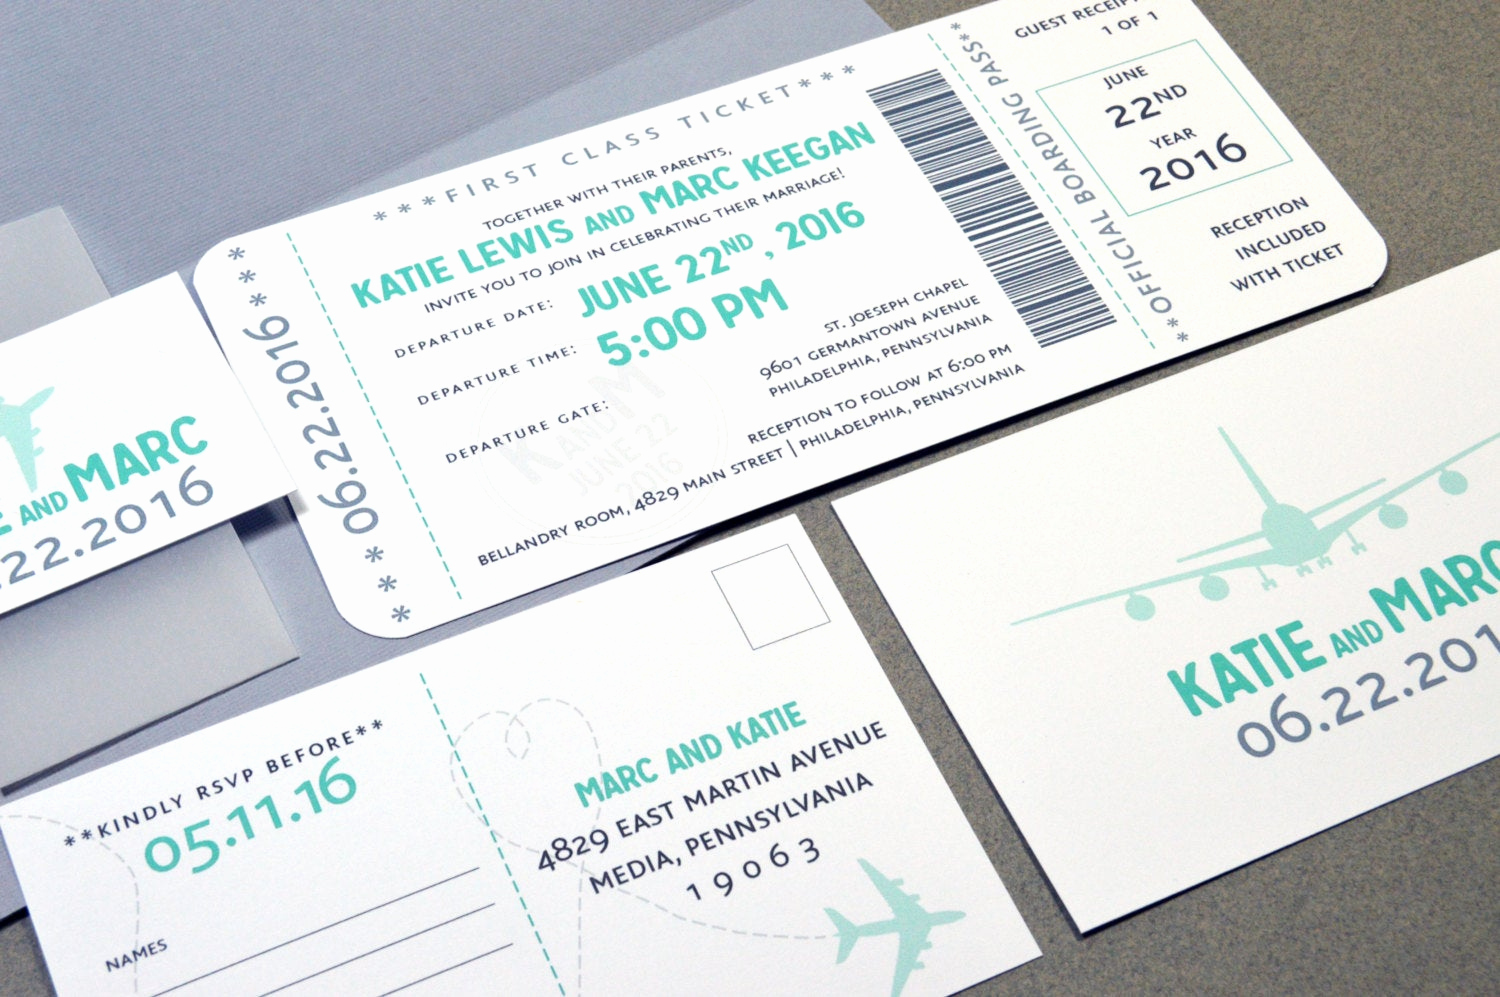 Boarding Pass Wedding Invitations Elegant Boarding Pass Wedding Invitations Plane Ticket by